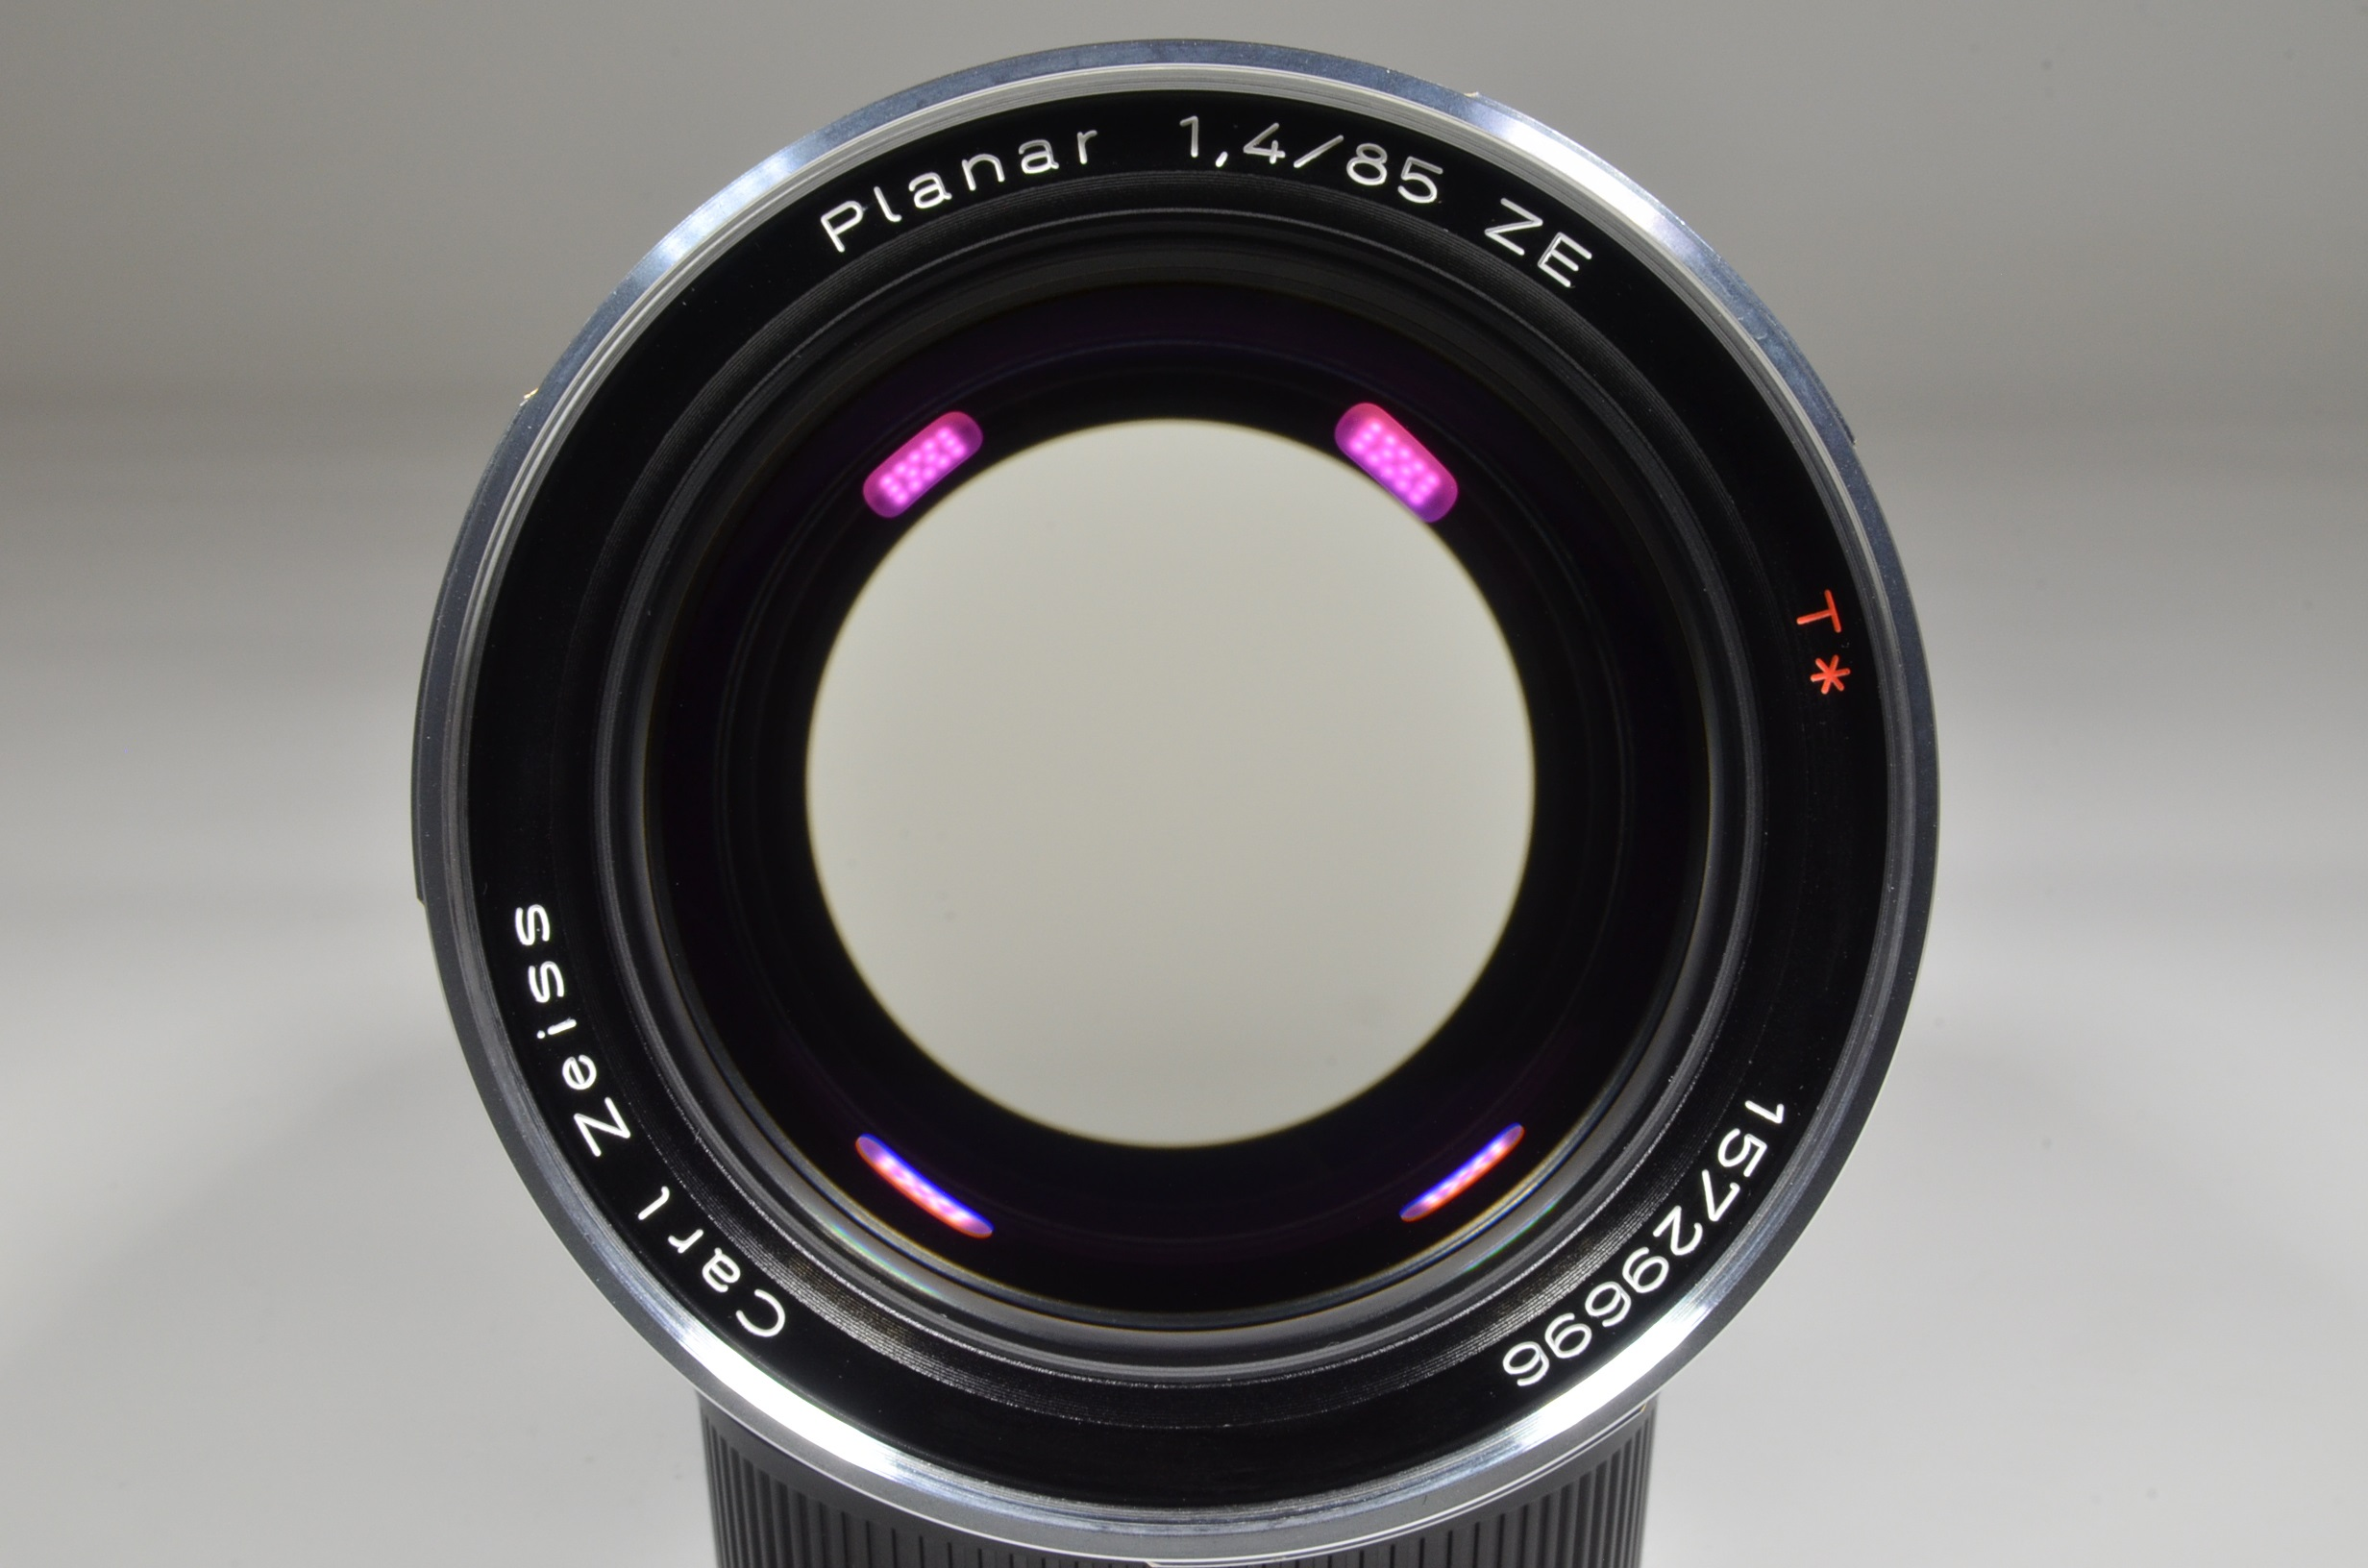 Zeiss 85mm F/1.4 Planar T* ZE